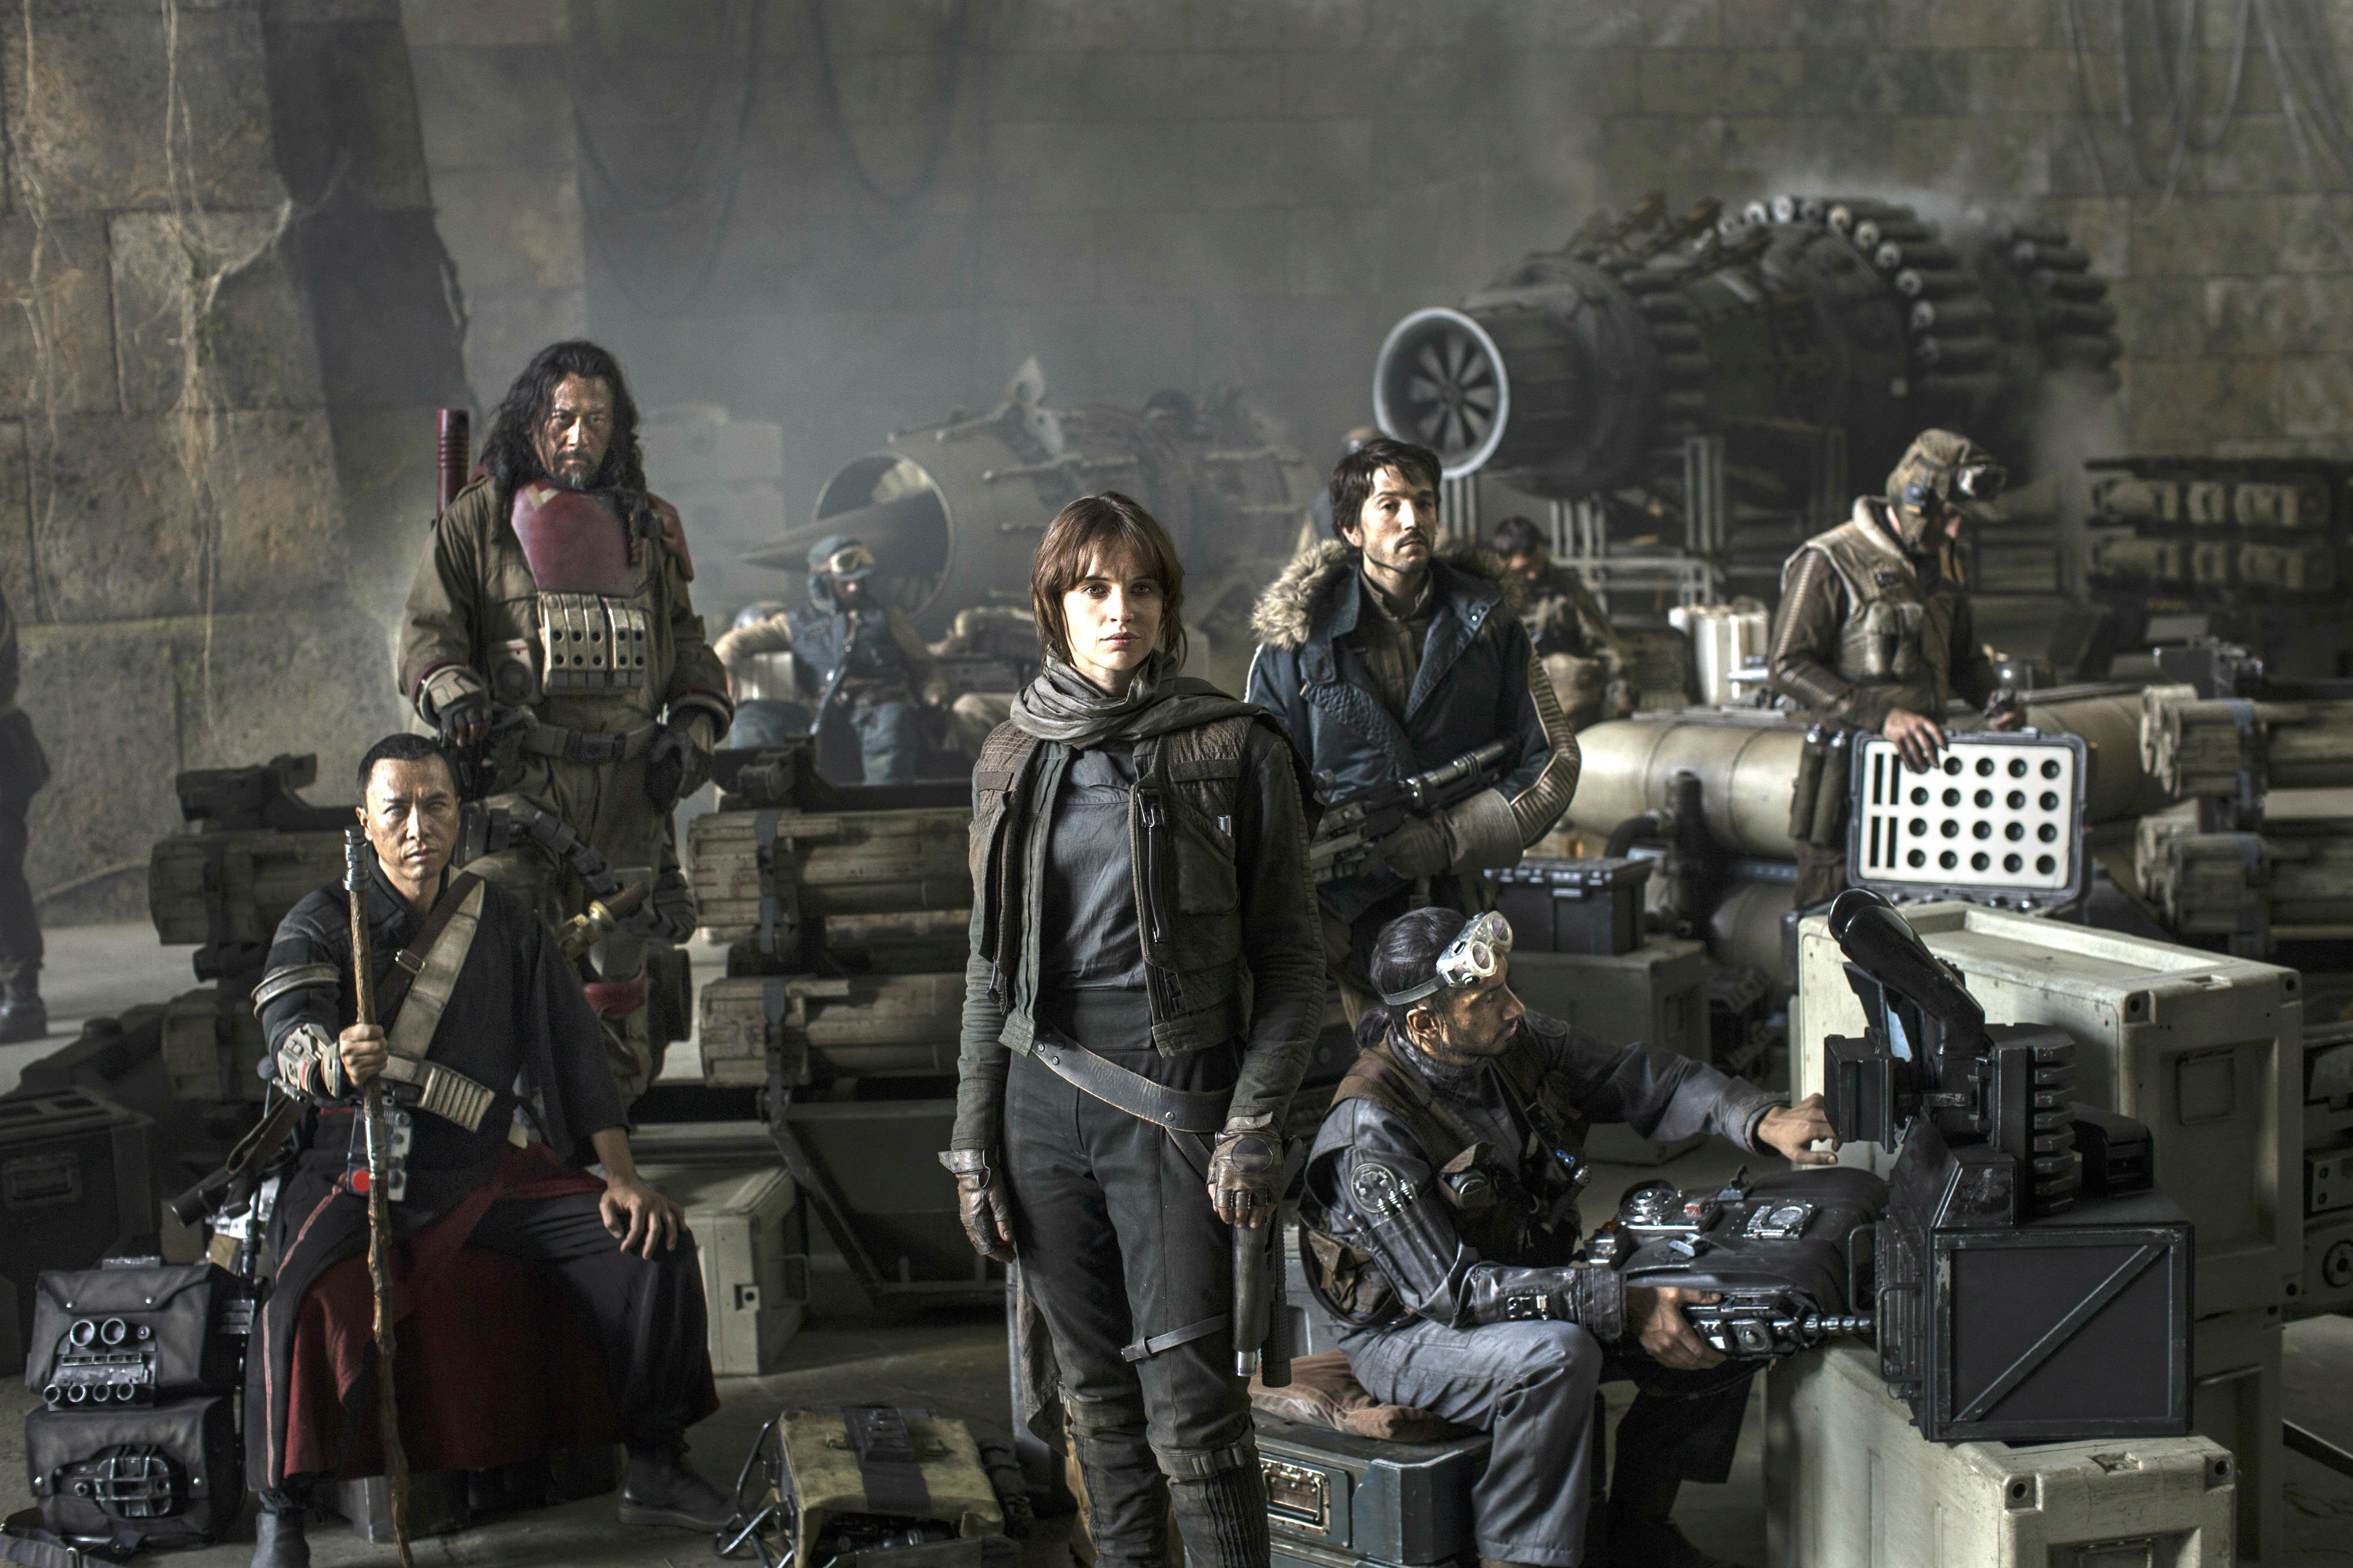 Rogue One Star Wars Story Sci Fi Space Futuristic Opera 1rosw